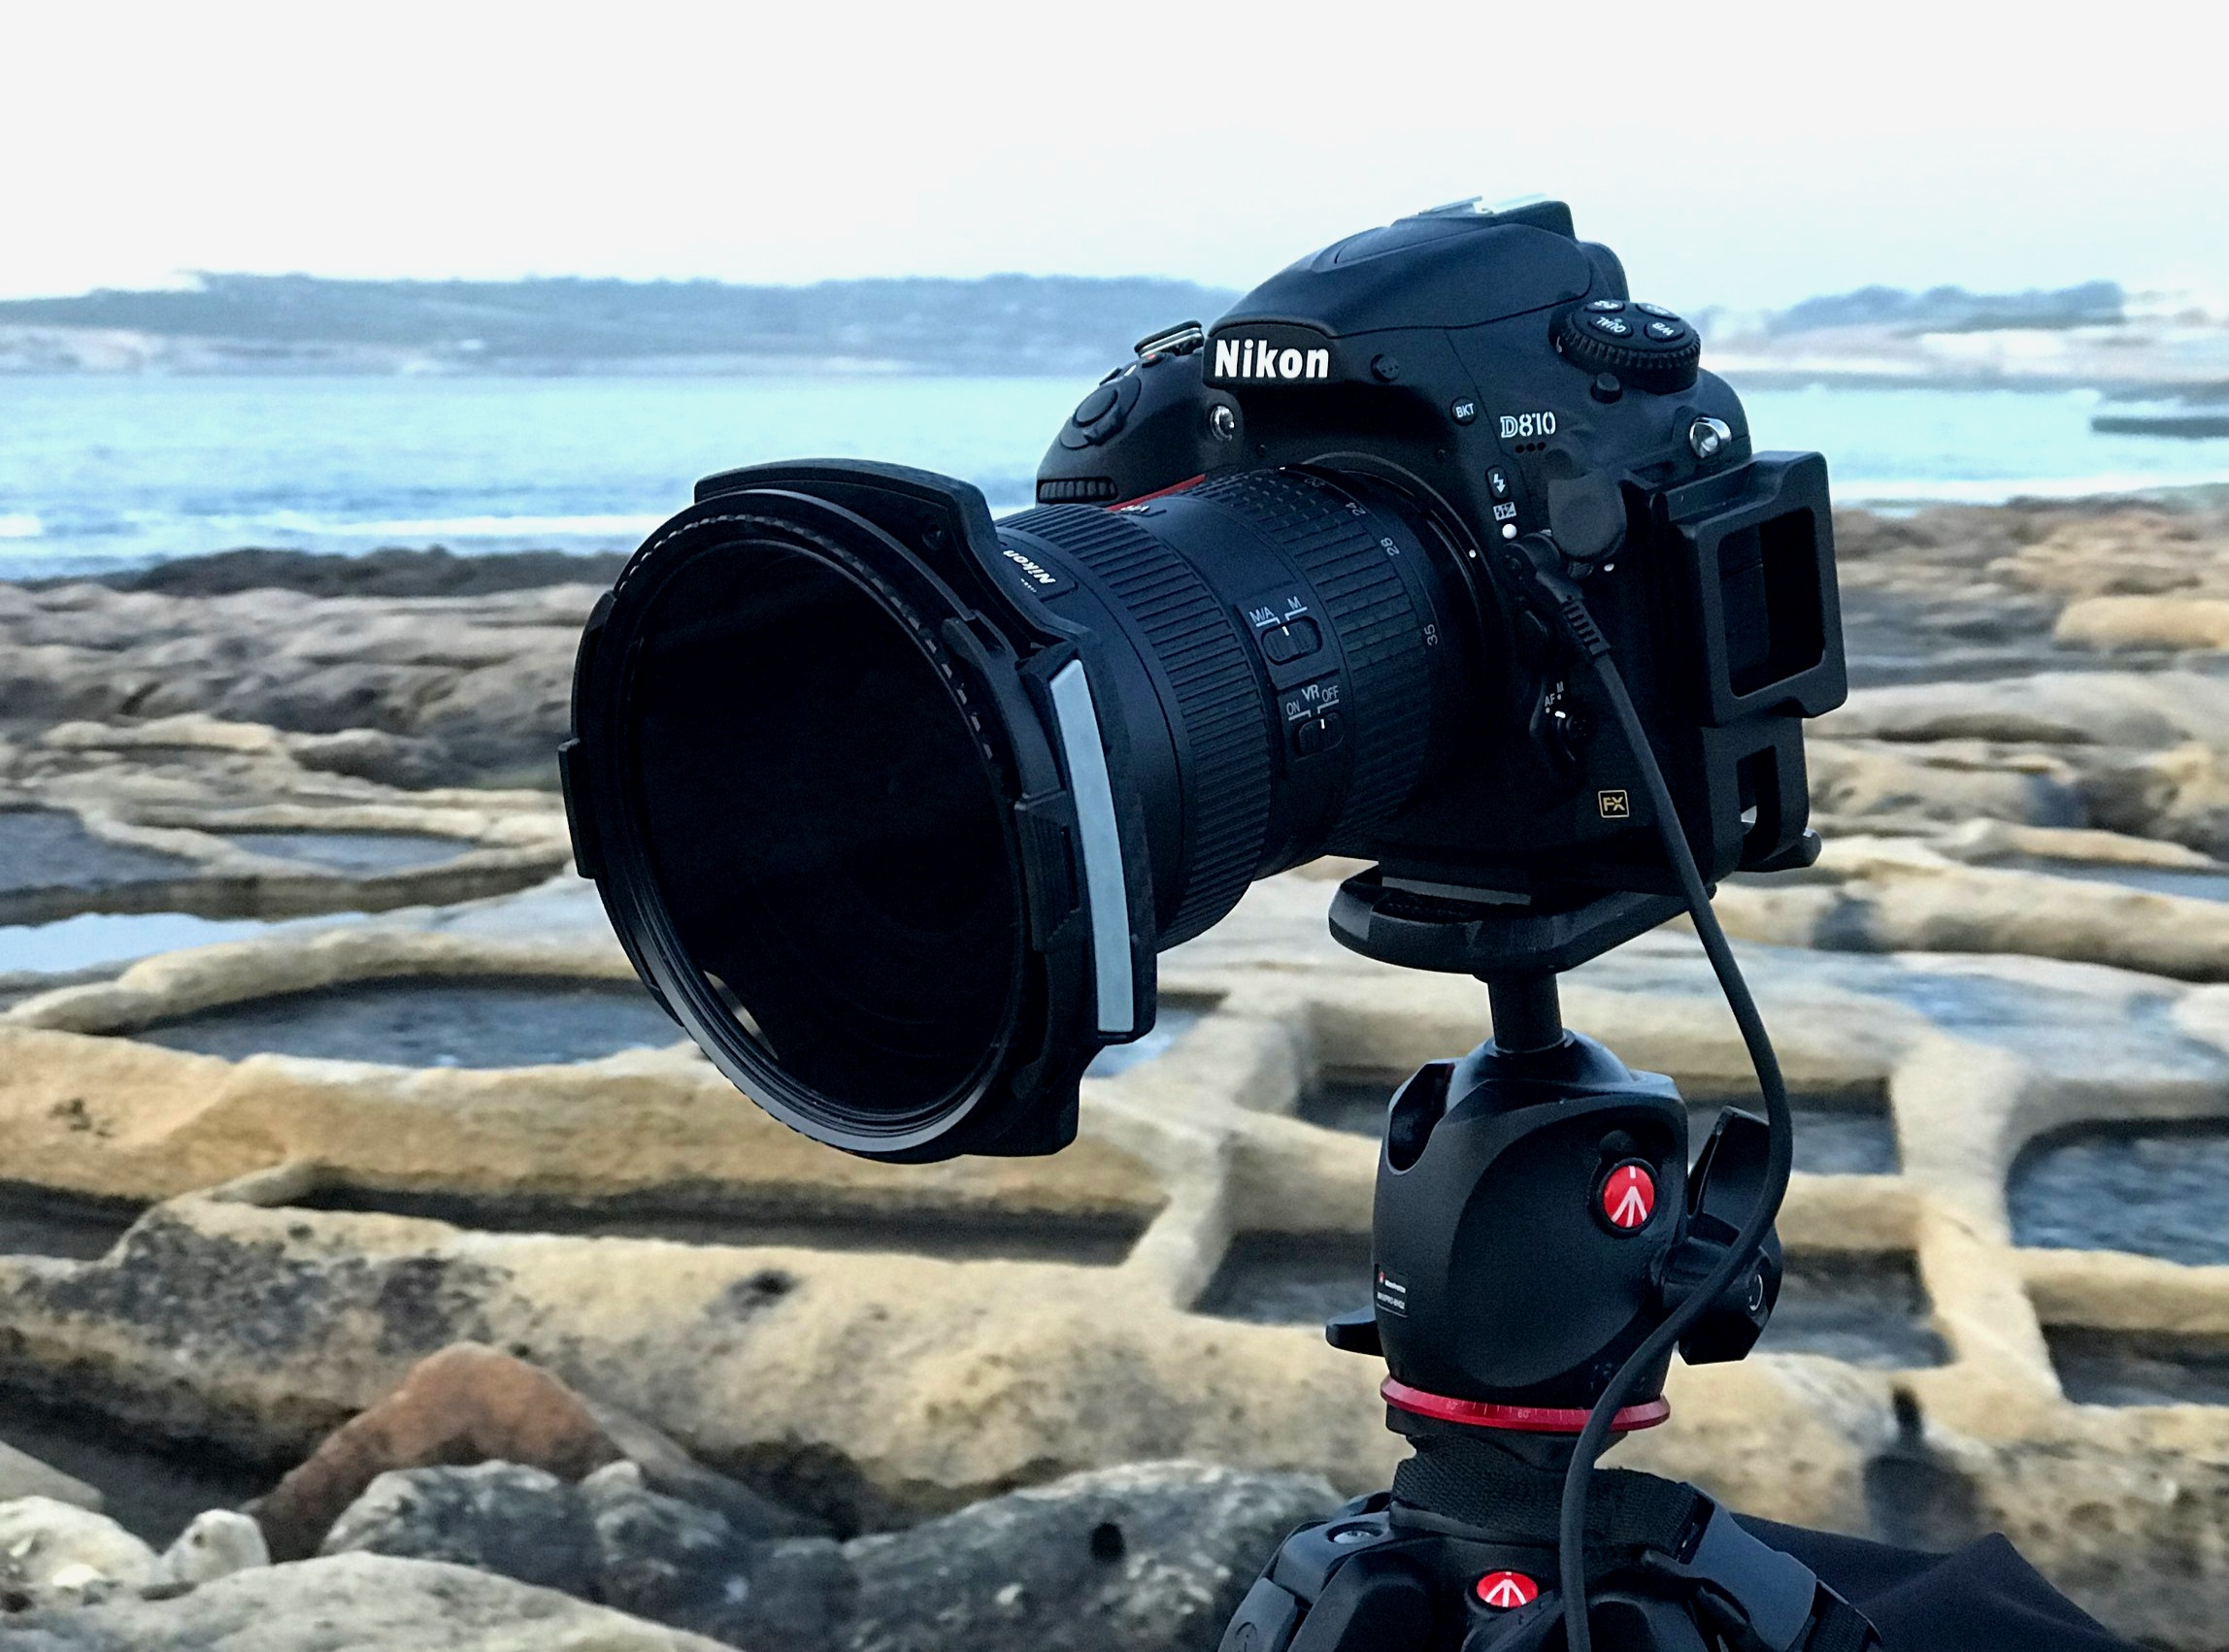 LEE100 holder with 2 guide-blocks and polariser mounted on Nikon D810 with Nikkor 16-35mm f4